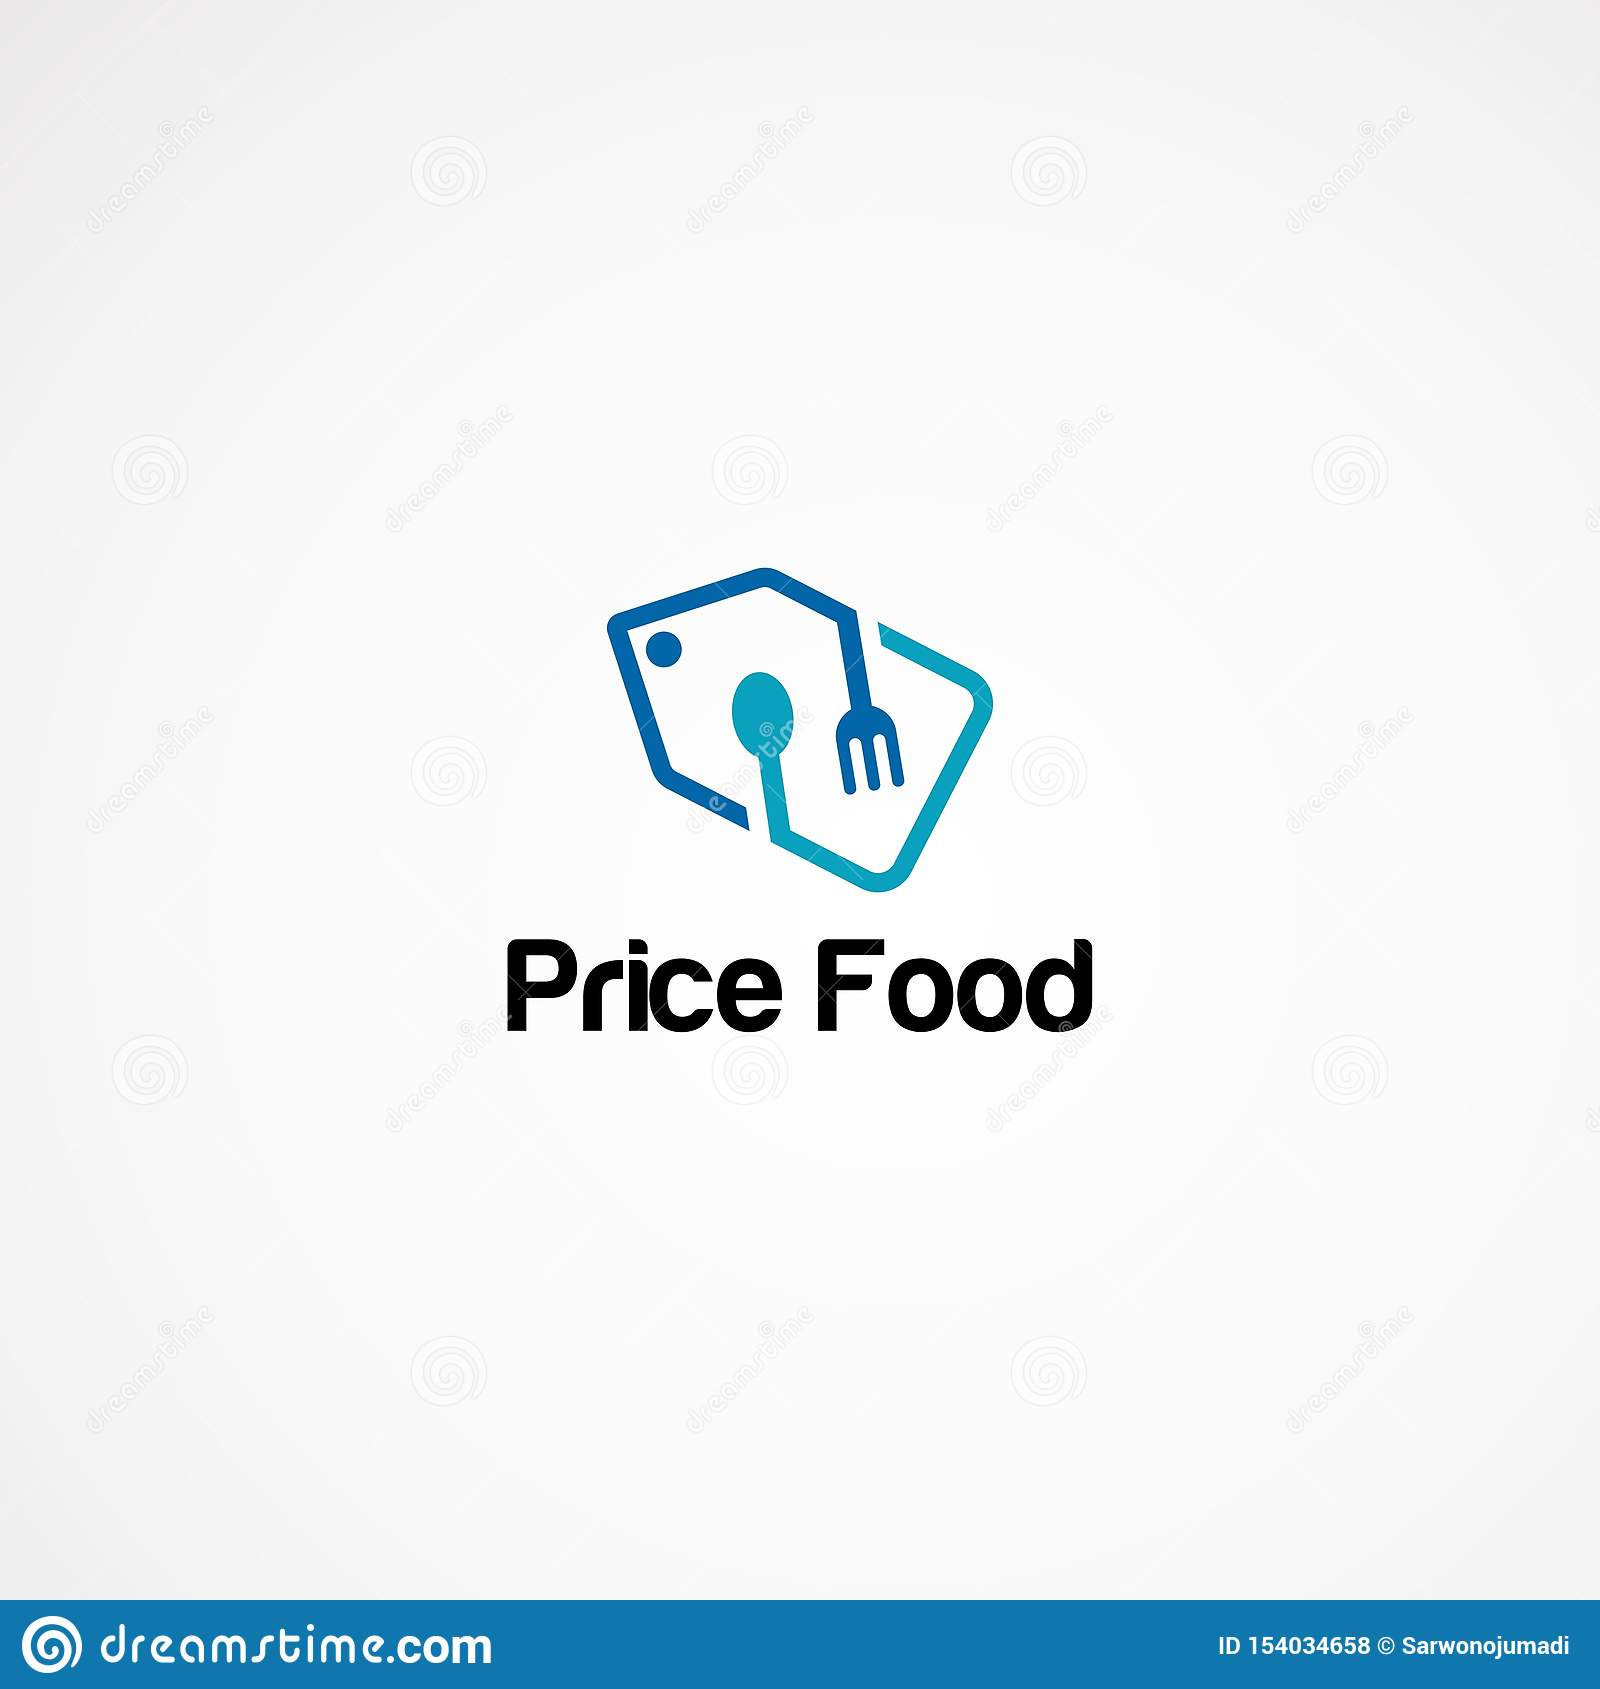 Price tag food logo designs concept, icon, element, and template for company